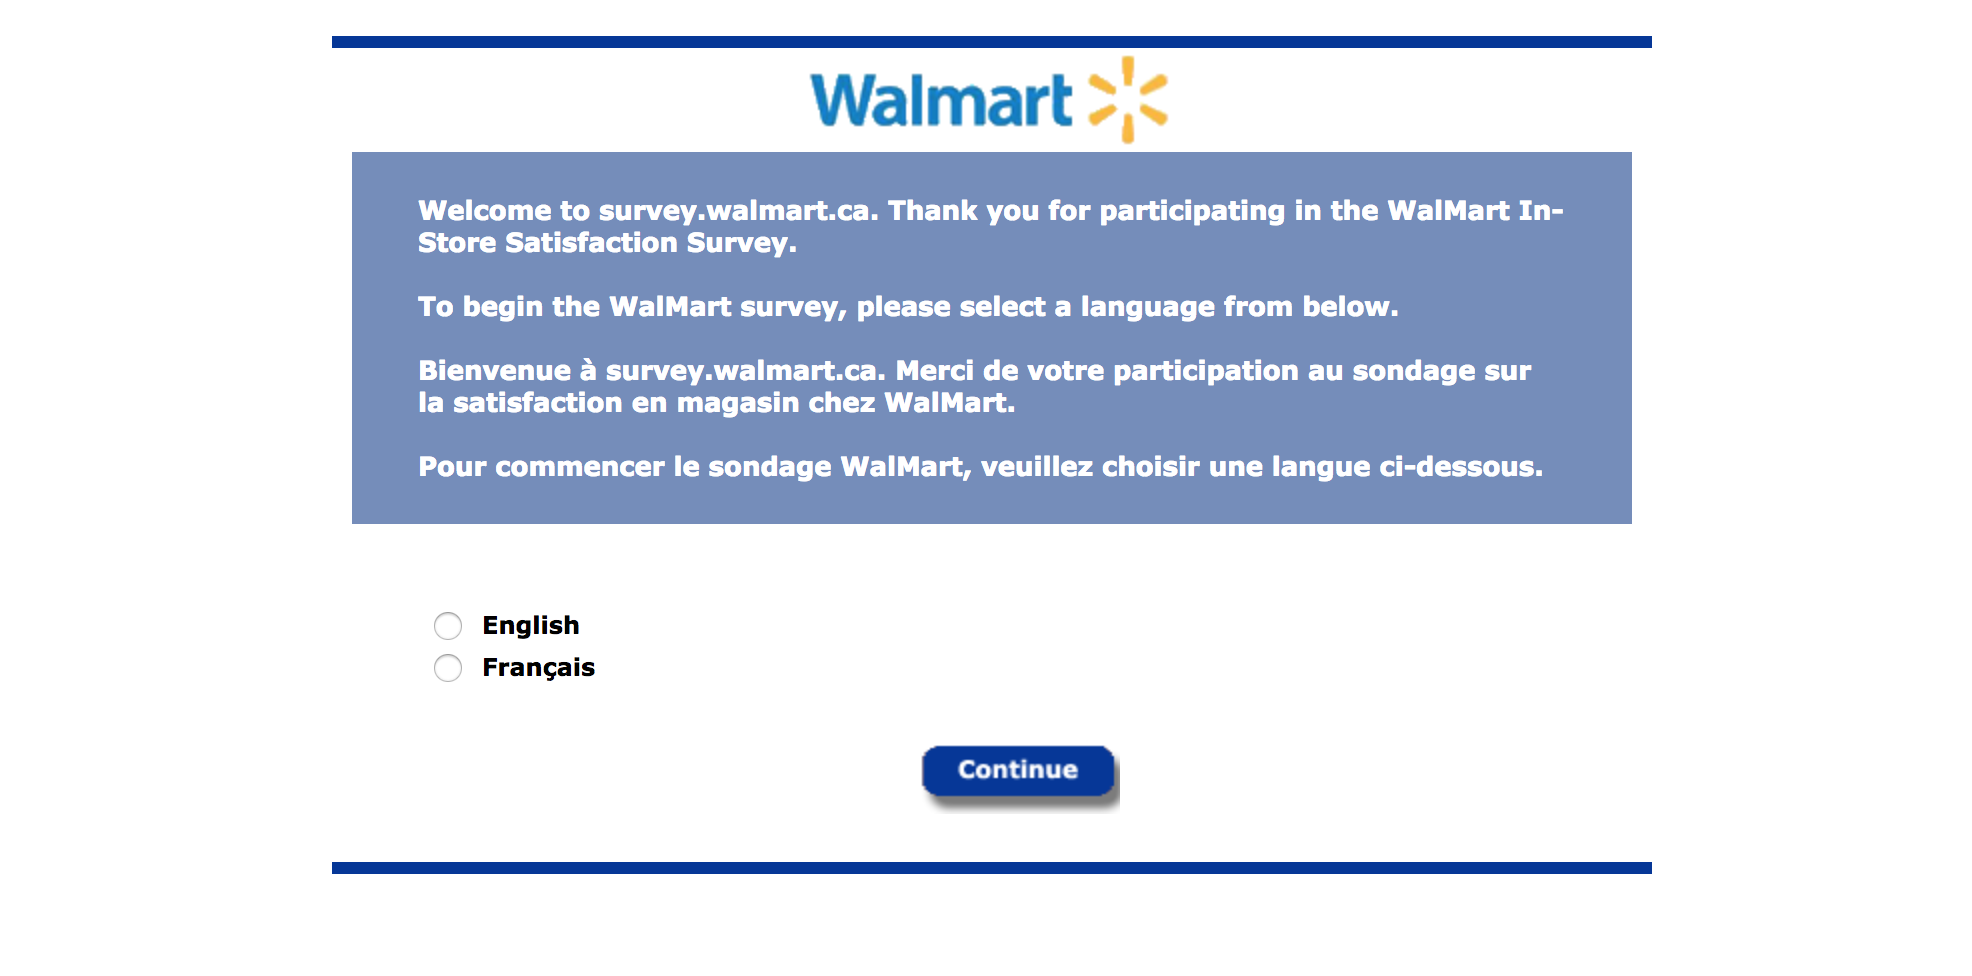 survey.walmart.ca